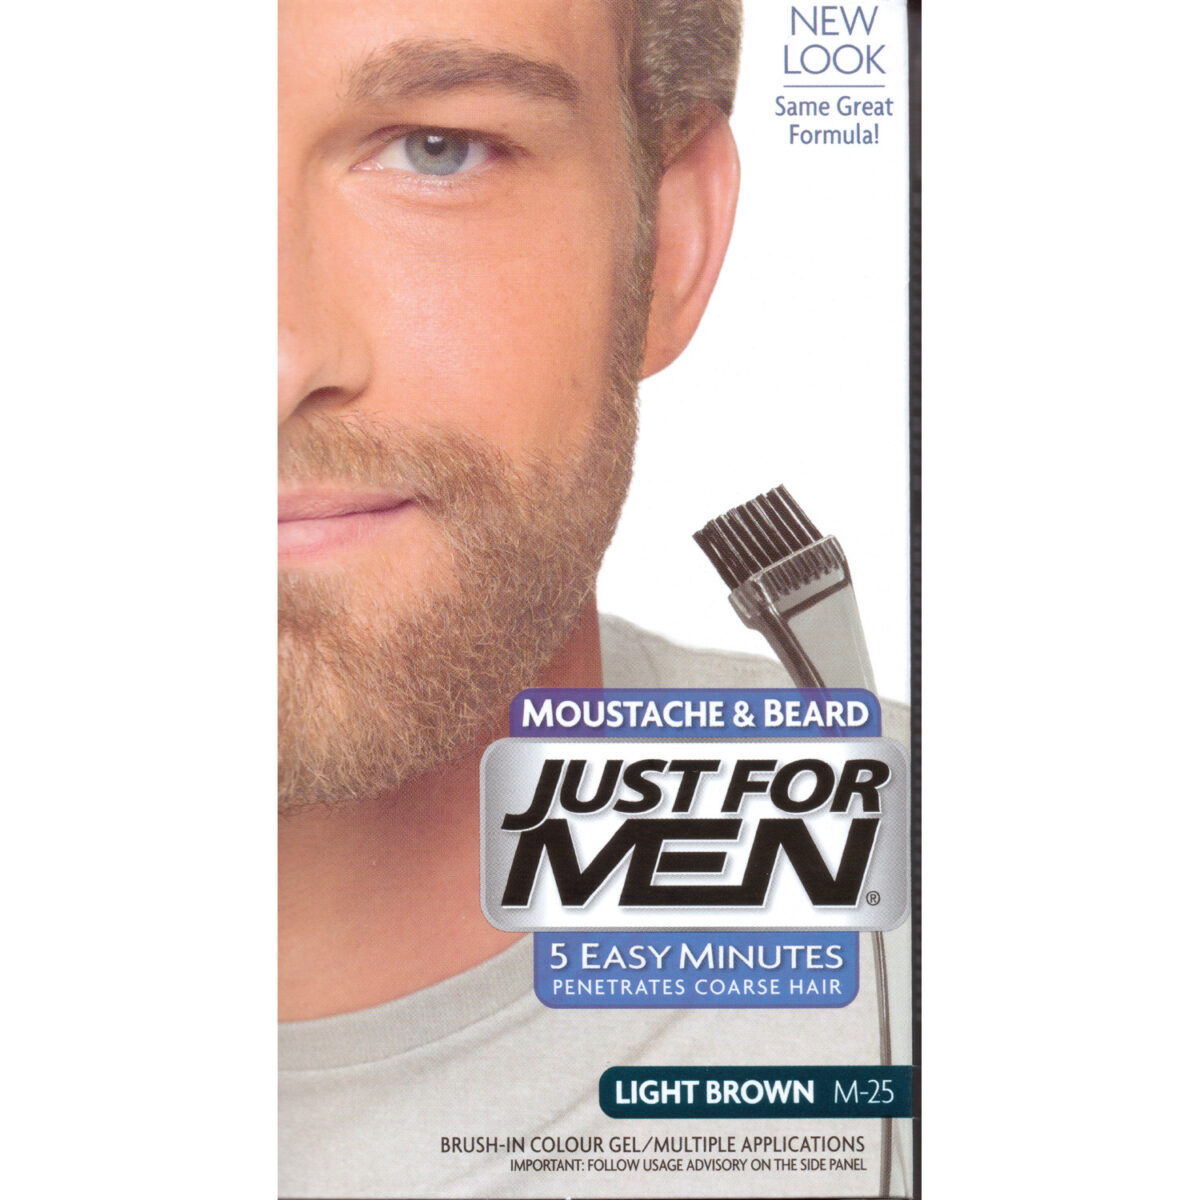 Just For Men Moustache & Beard Brush-In Colour Gel - Choose your colour-Light Brown M25-0